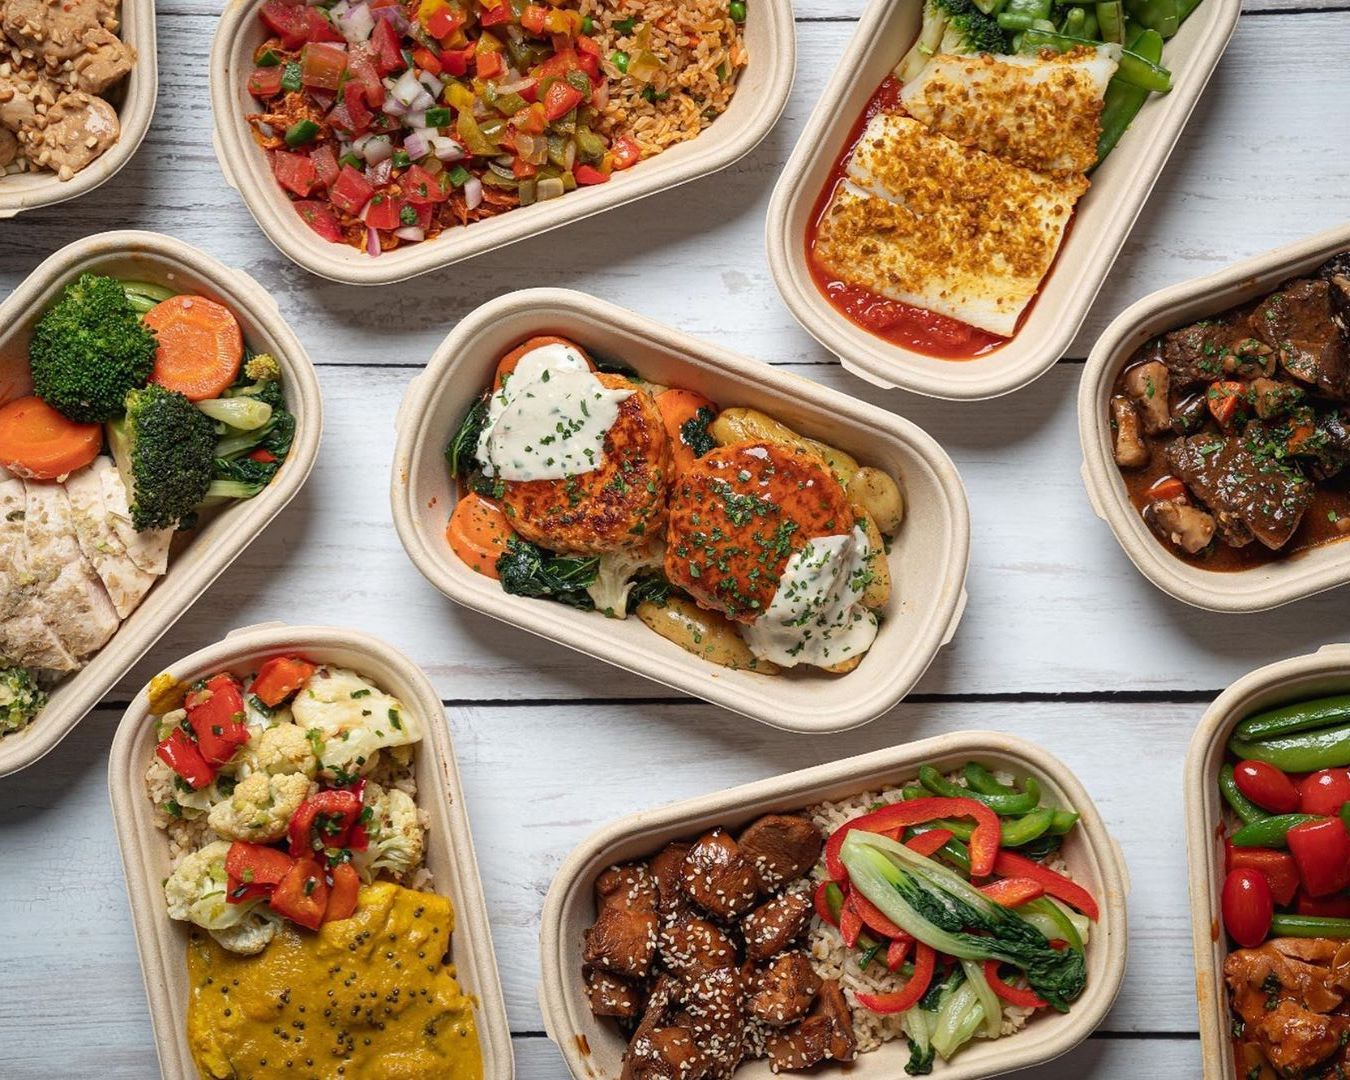 5 Changes You'll Experience When You Sign-up for a Meal Delivery Service